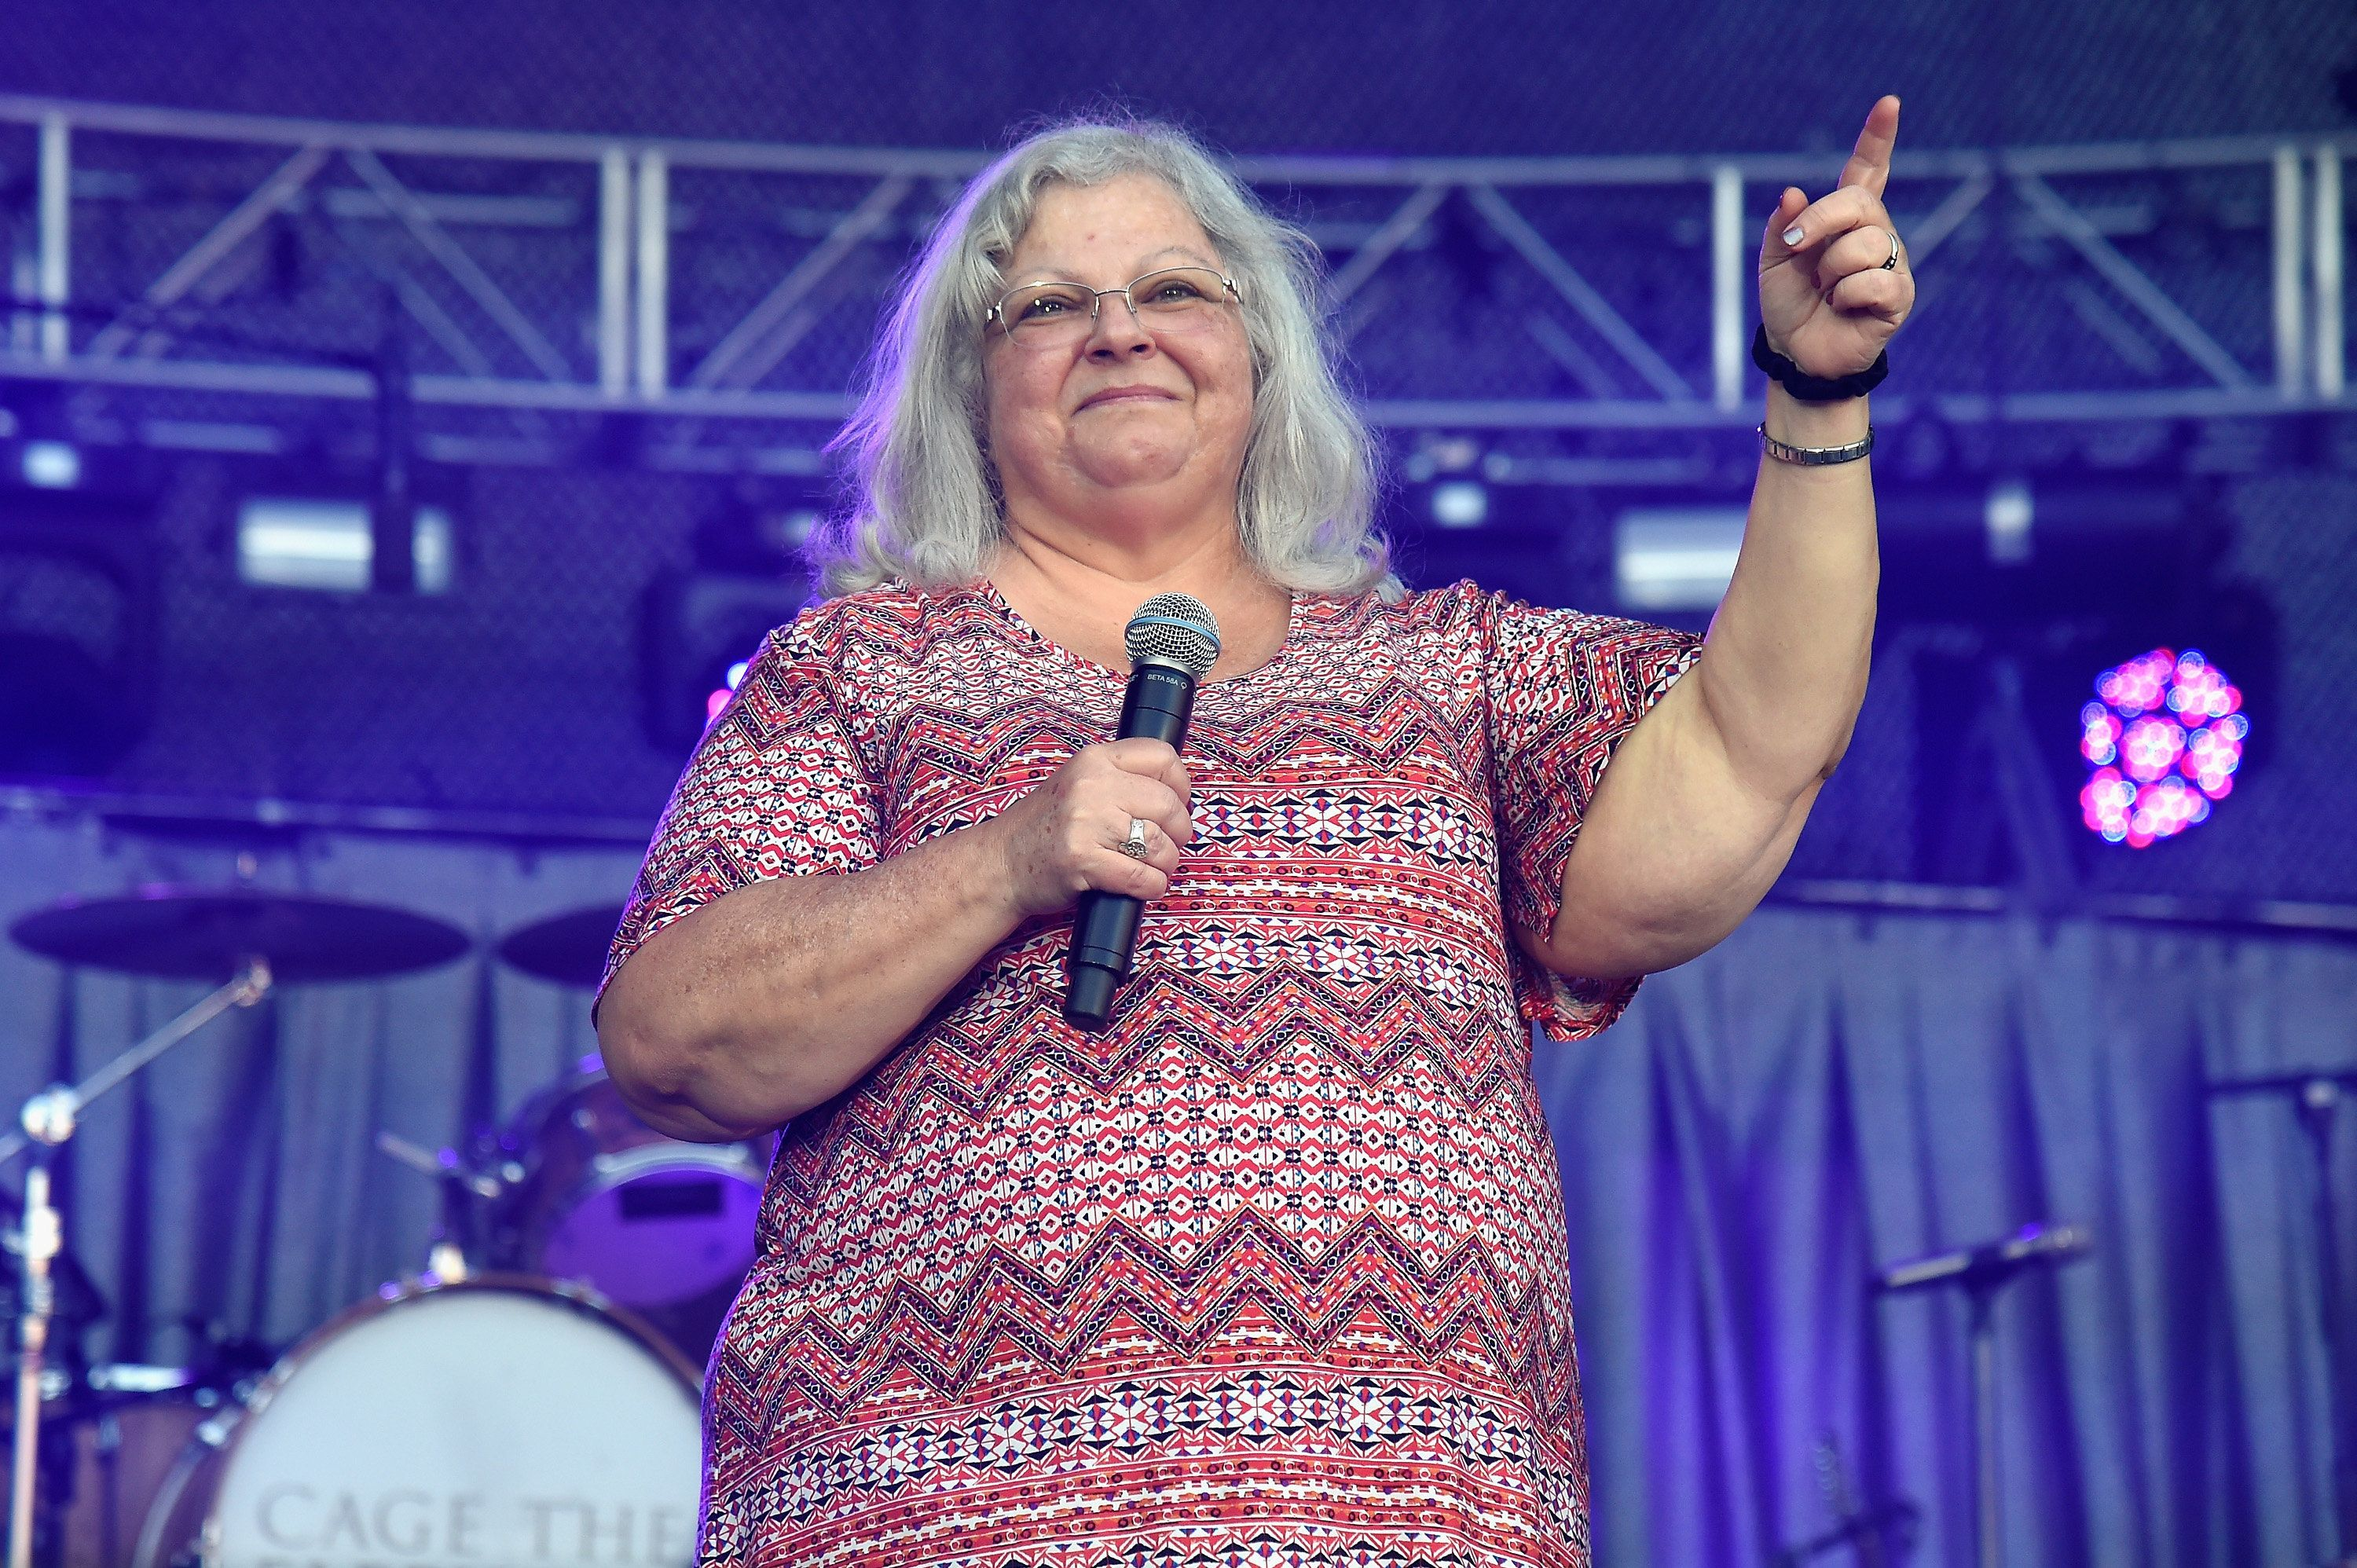 CHARLOTTESVILLE, VA - SEPTEMBER 24:  Susan Bro, mother of Heather Heyer, speaks onstage at 'A Concert for Charlottesville,'  at University of Virginia's Scott Stadium on September 24, 2017 in Charlottesville, Virginia. Concert live-stream presented in partnership with Oath.  (Photo by Kevin Mazur/Getty Images)